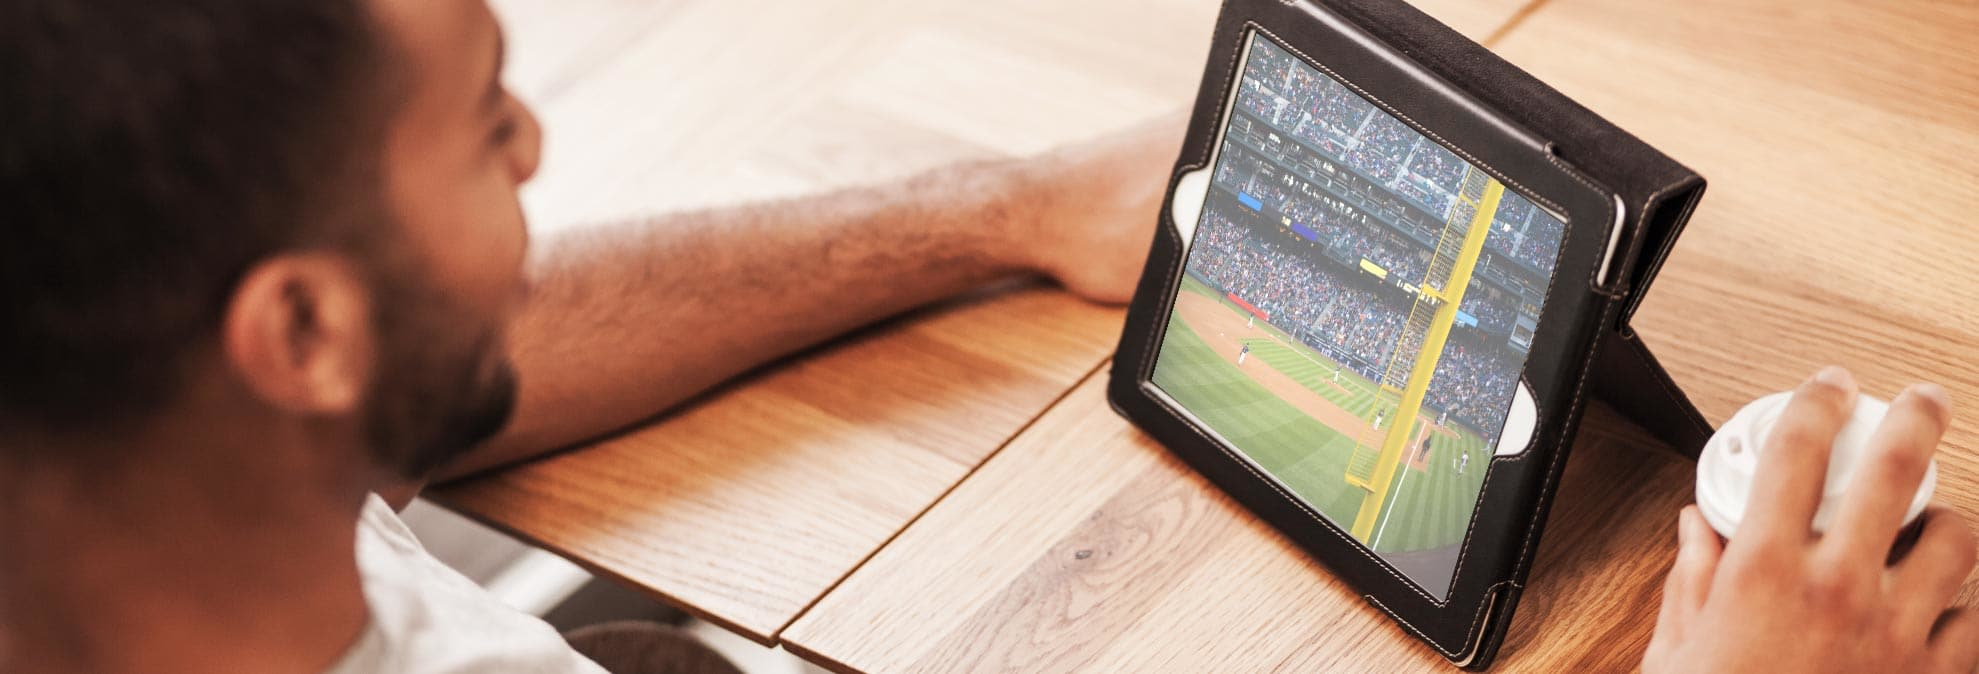 How to Stream the Major League Baseball Playoffs - Consumer Reports